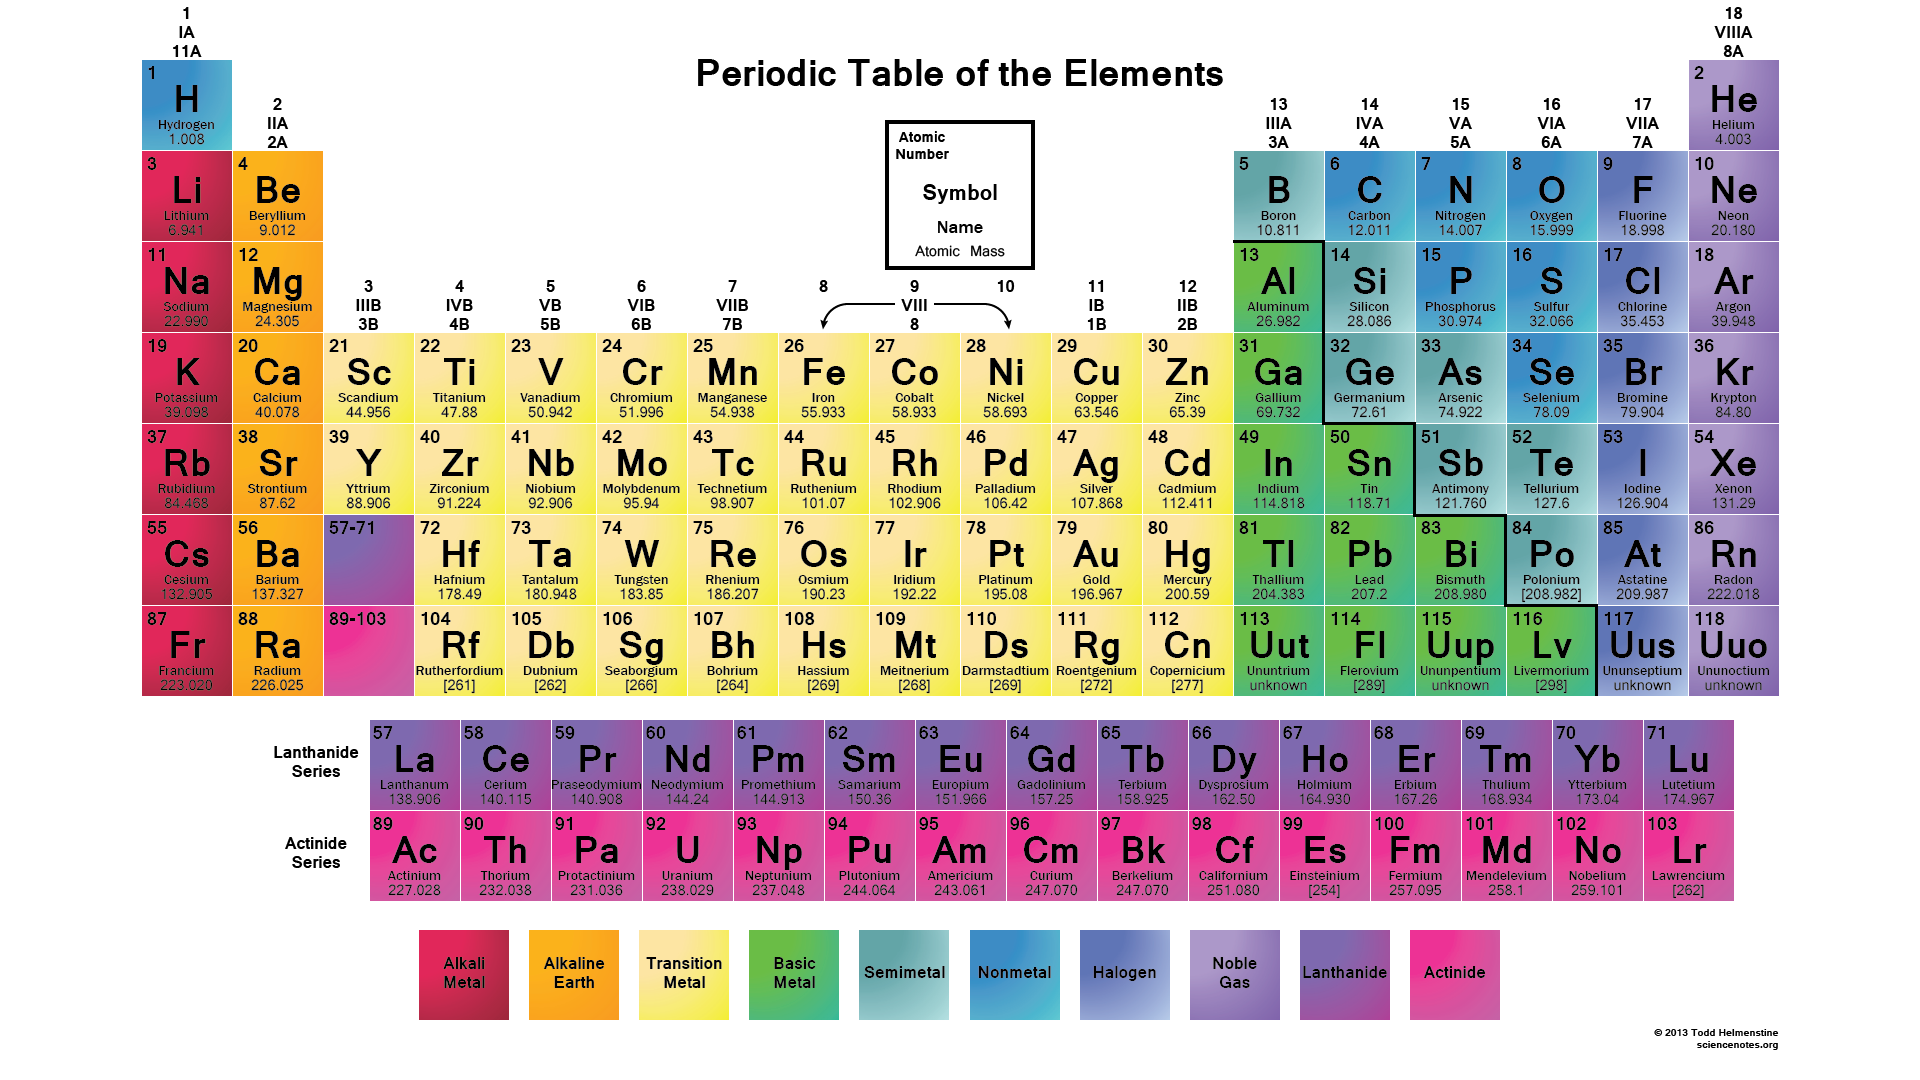 If you know how to use a periodic table, you can get a lot of information about elements at a glance.